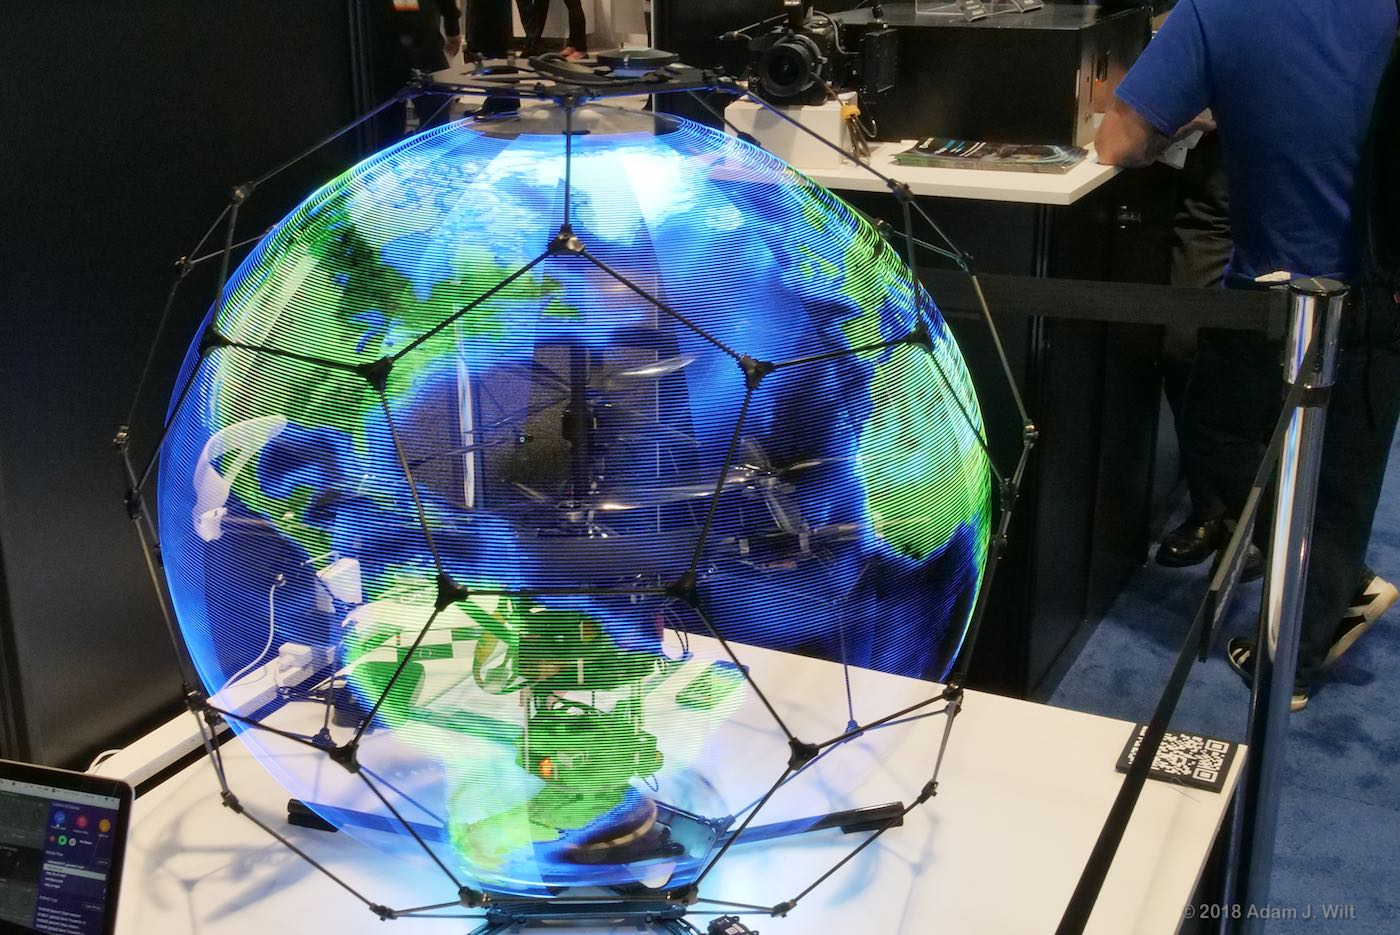 Spherical Drone Display, displaying a globe